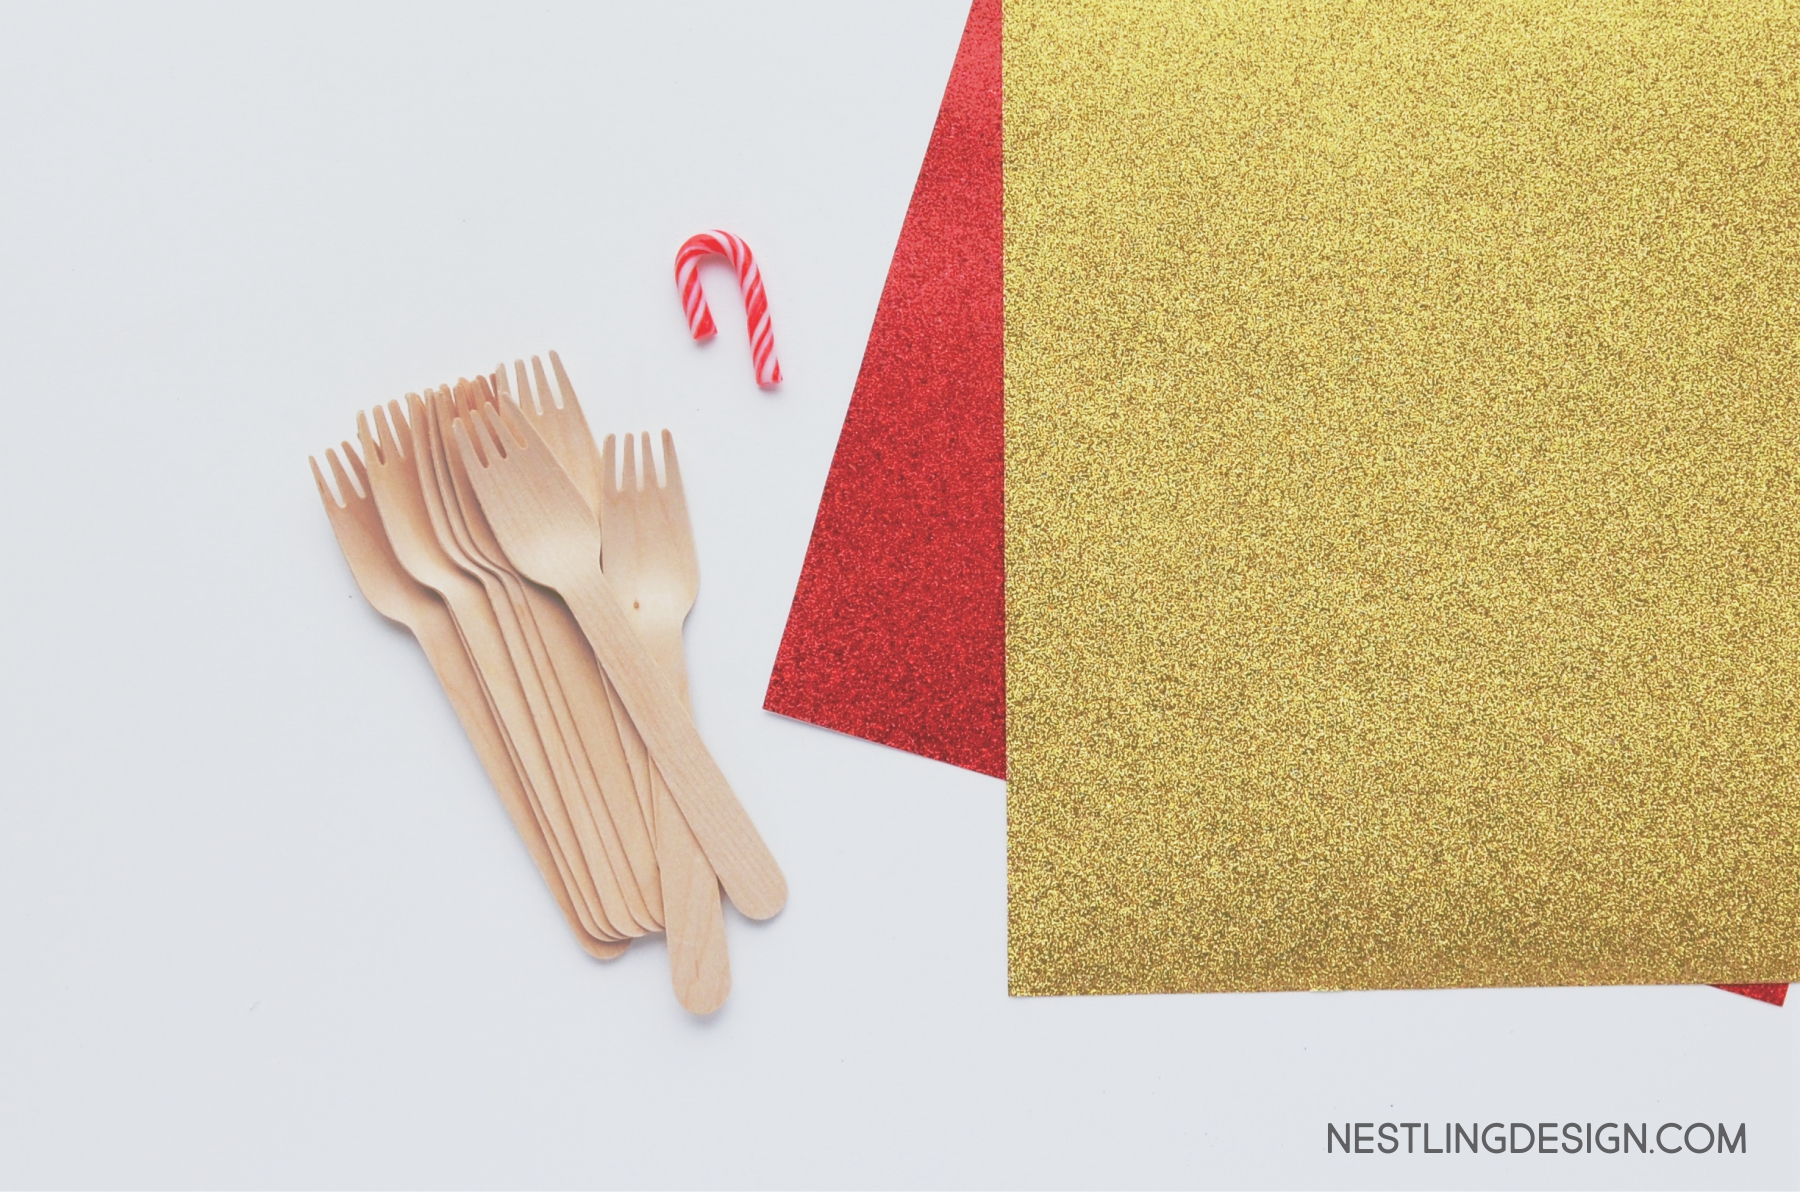 3 Ways To DIY Wooden Cutlery | NestlingDesign.com